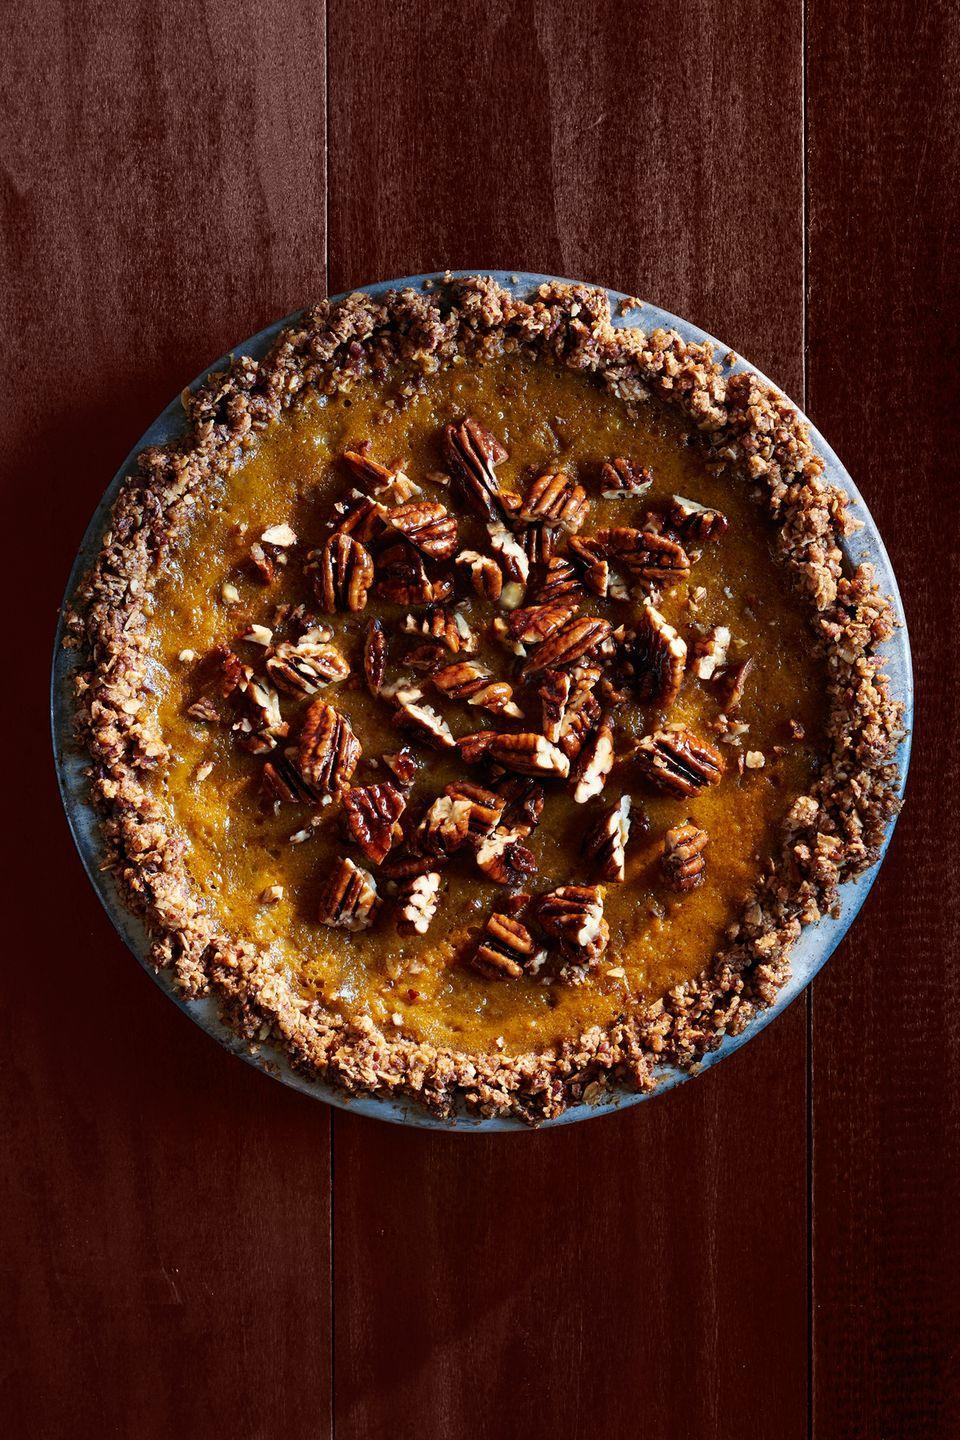 """<p>Take this year's pumpkin pie to the next level by adding sweet candied pecans.</p><p><strong><a href=""""https://www.countryliving.com/food-drinks/recipes/a36554/pumpkin-pie-with-oat-pecan-crust/"""" rel=""""nofollow noopener"""" target=""""_blank"""" data-ylk=""""slk:Get the recipe"""" class=""""link rapid-noclick-resp"""">Get the recipe</a>.</strong> </p>"""